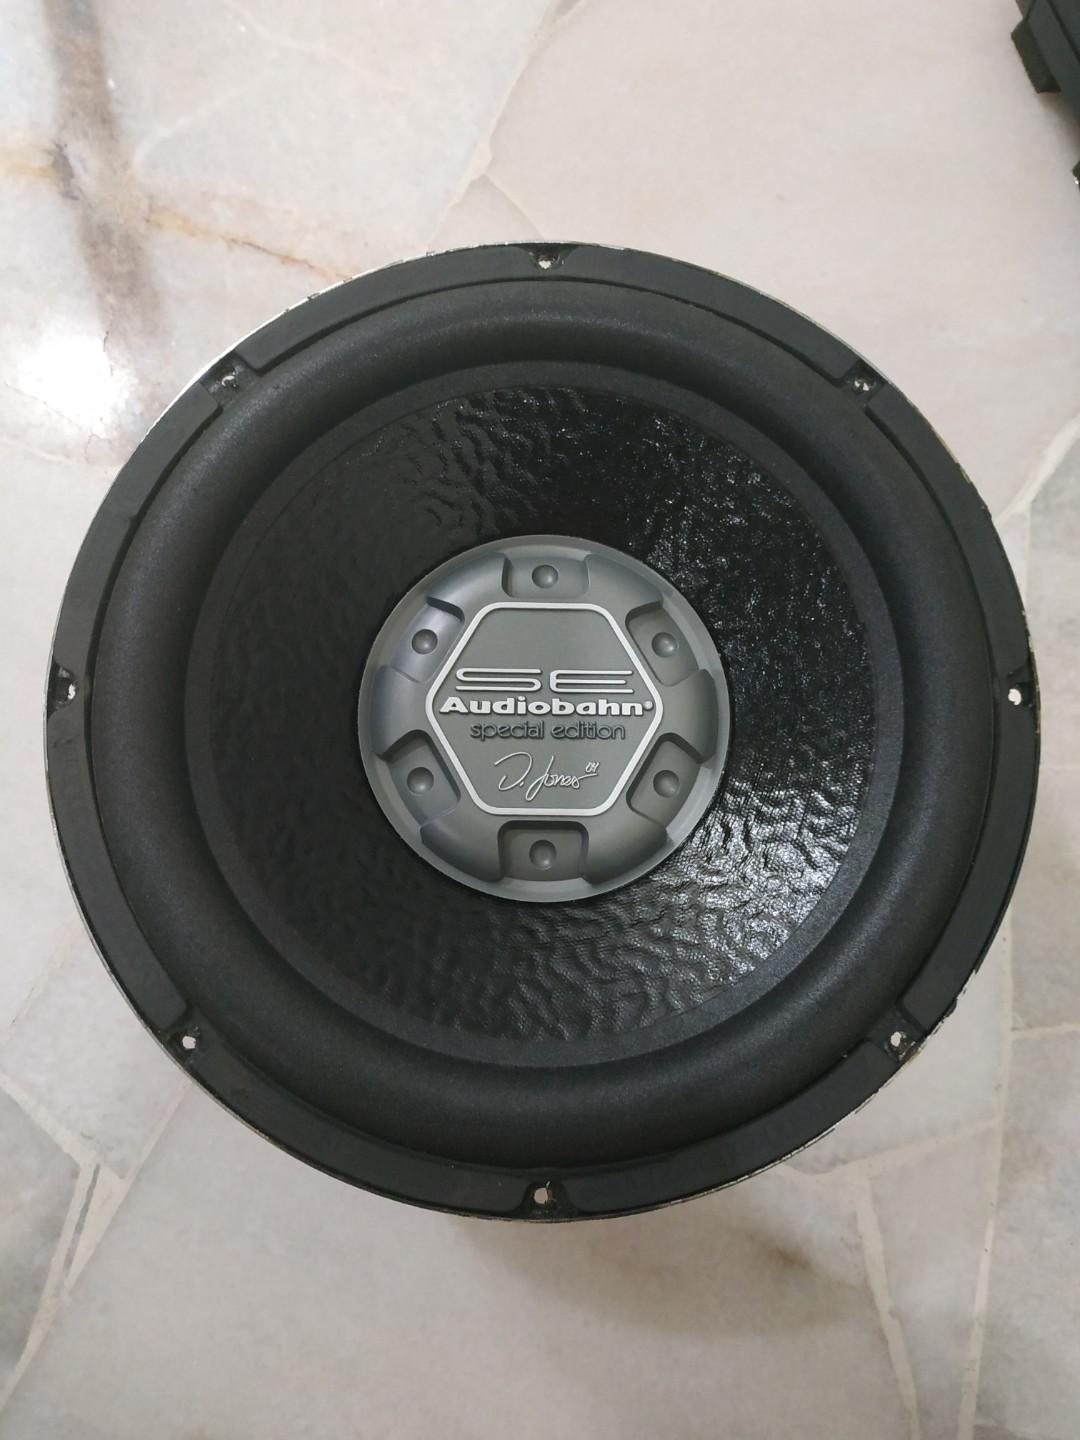 "Audiobahn AW1251SE  Natural Sound Series 12"" subwoofer with dual 4-ohm voice coils"